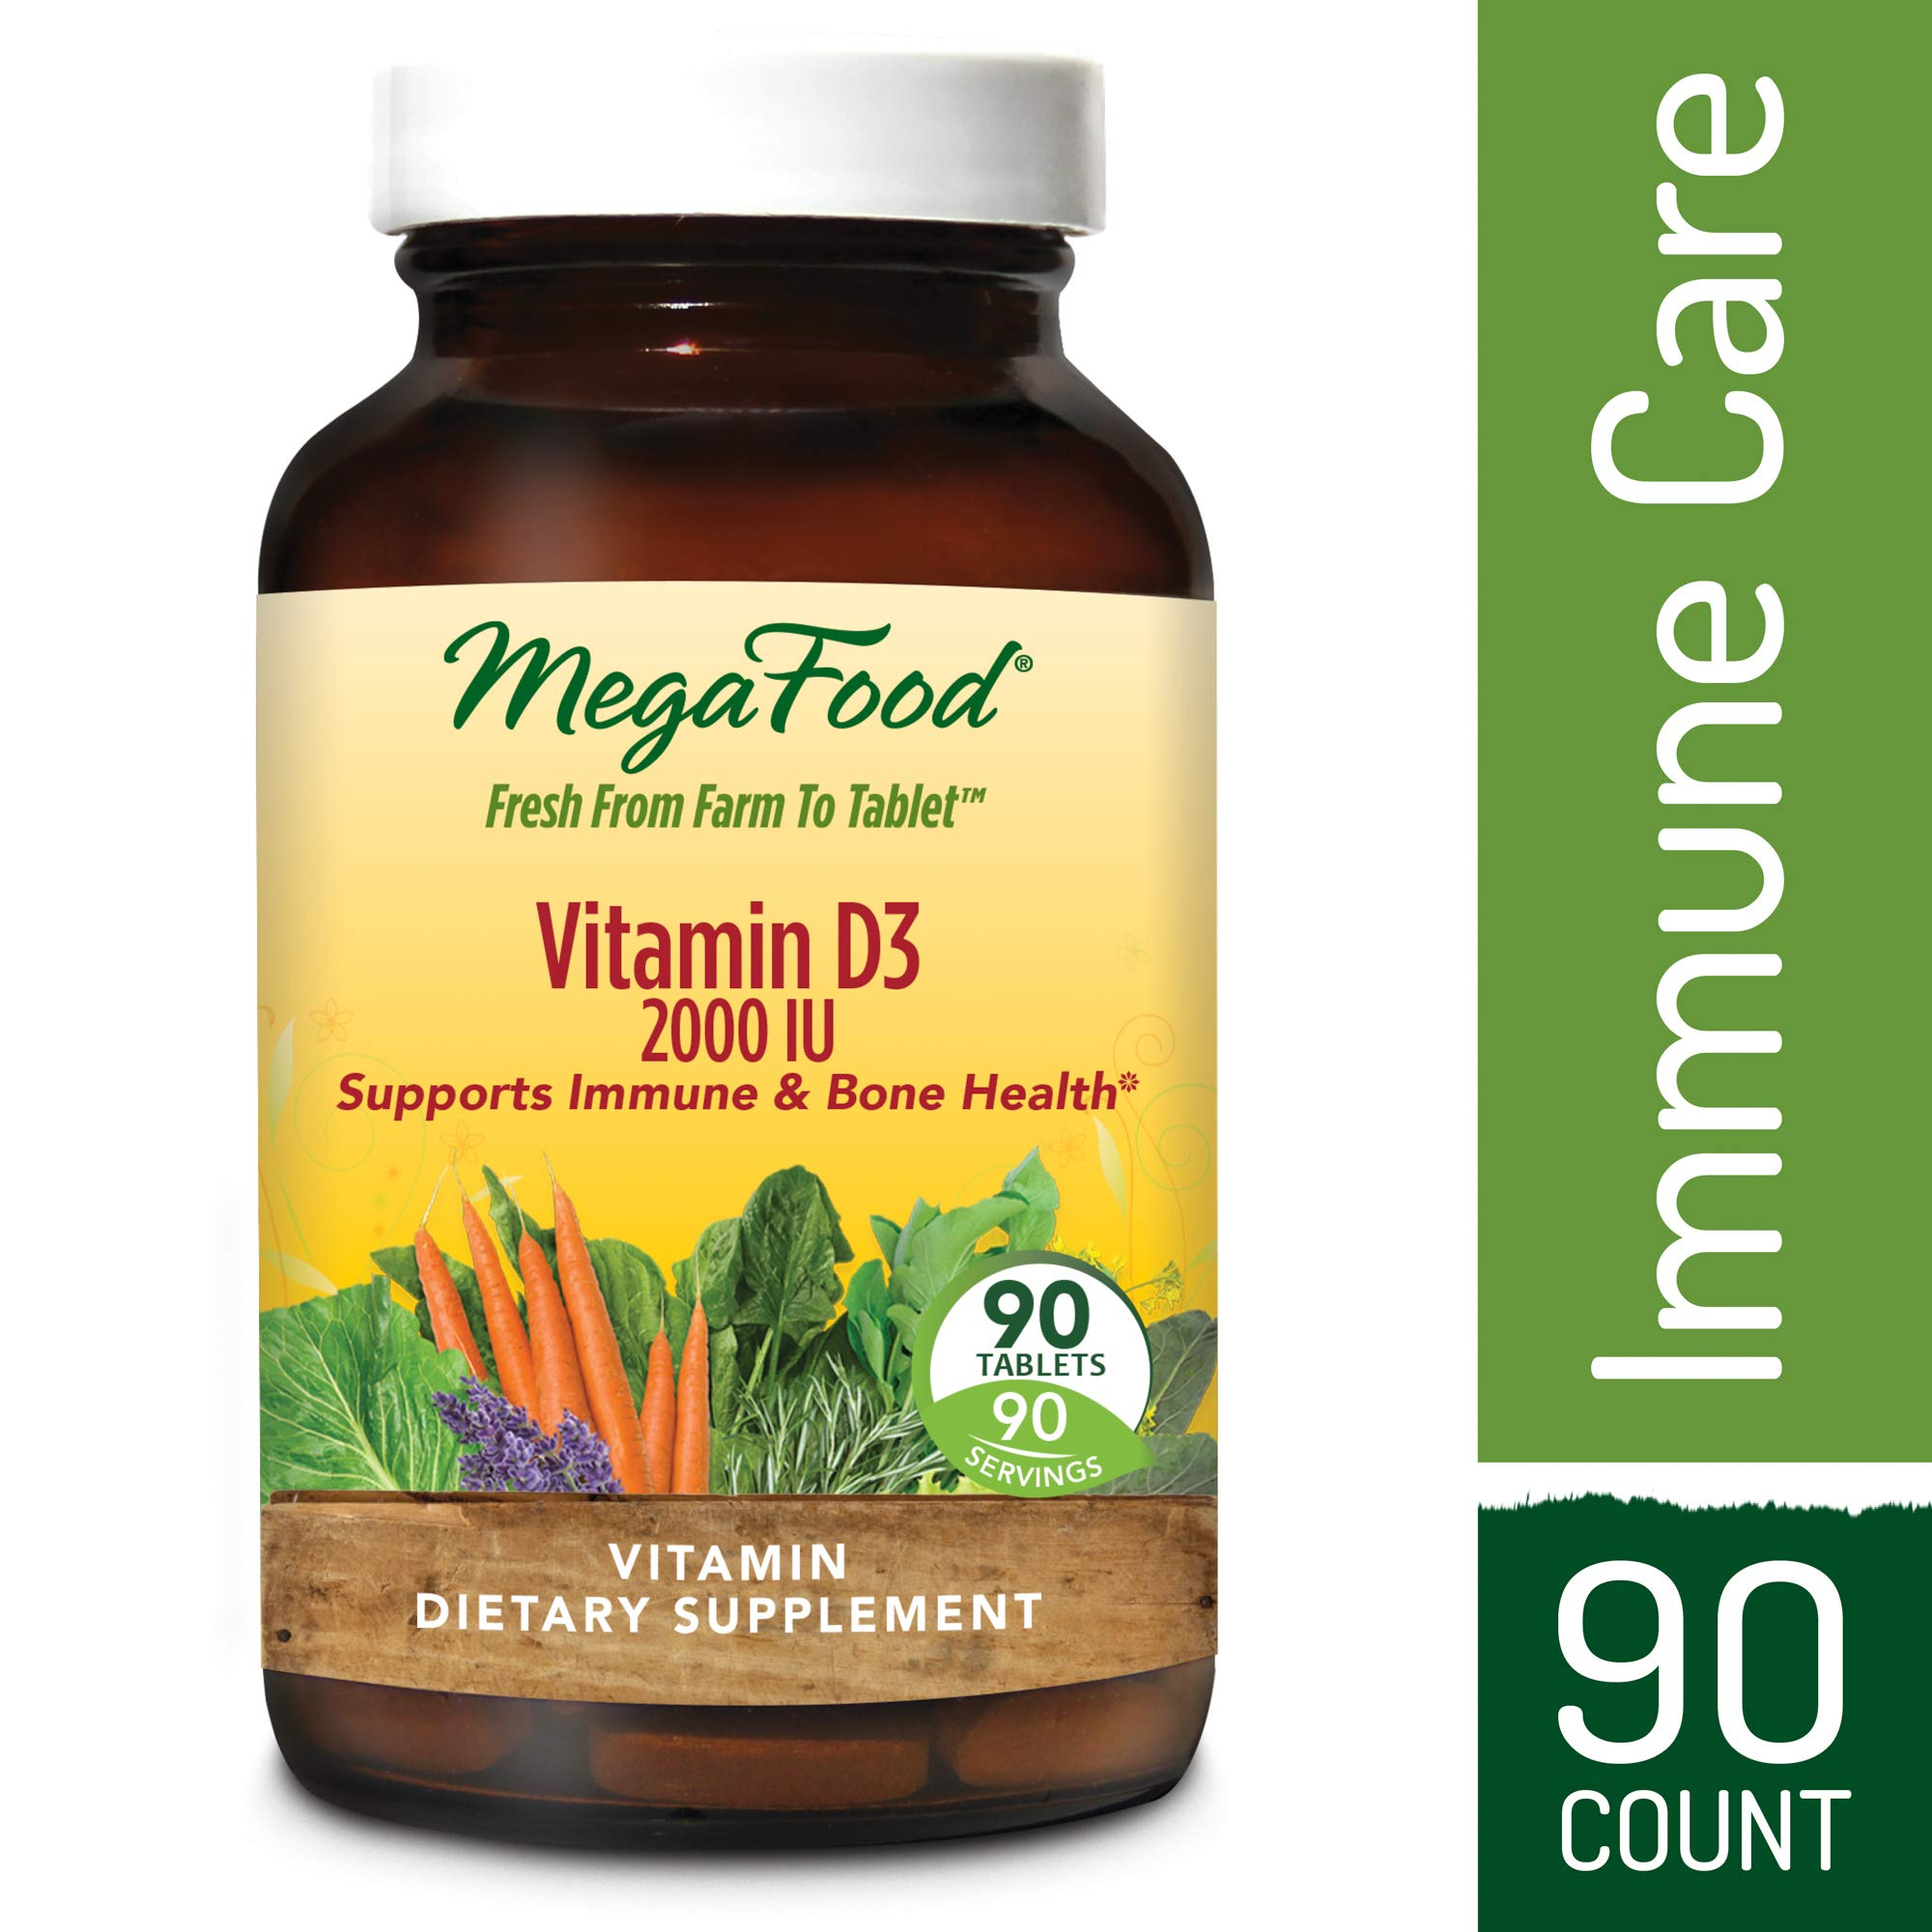 MegaFood - Vitamin D3 2000 IU, Support for Immune Health, Bone Strength, Hormone Production with Organic Herbs and Food, Vegetarian, Gluten-Free, Non-GMO, 90 Tablets (FFP)